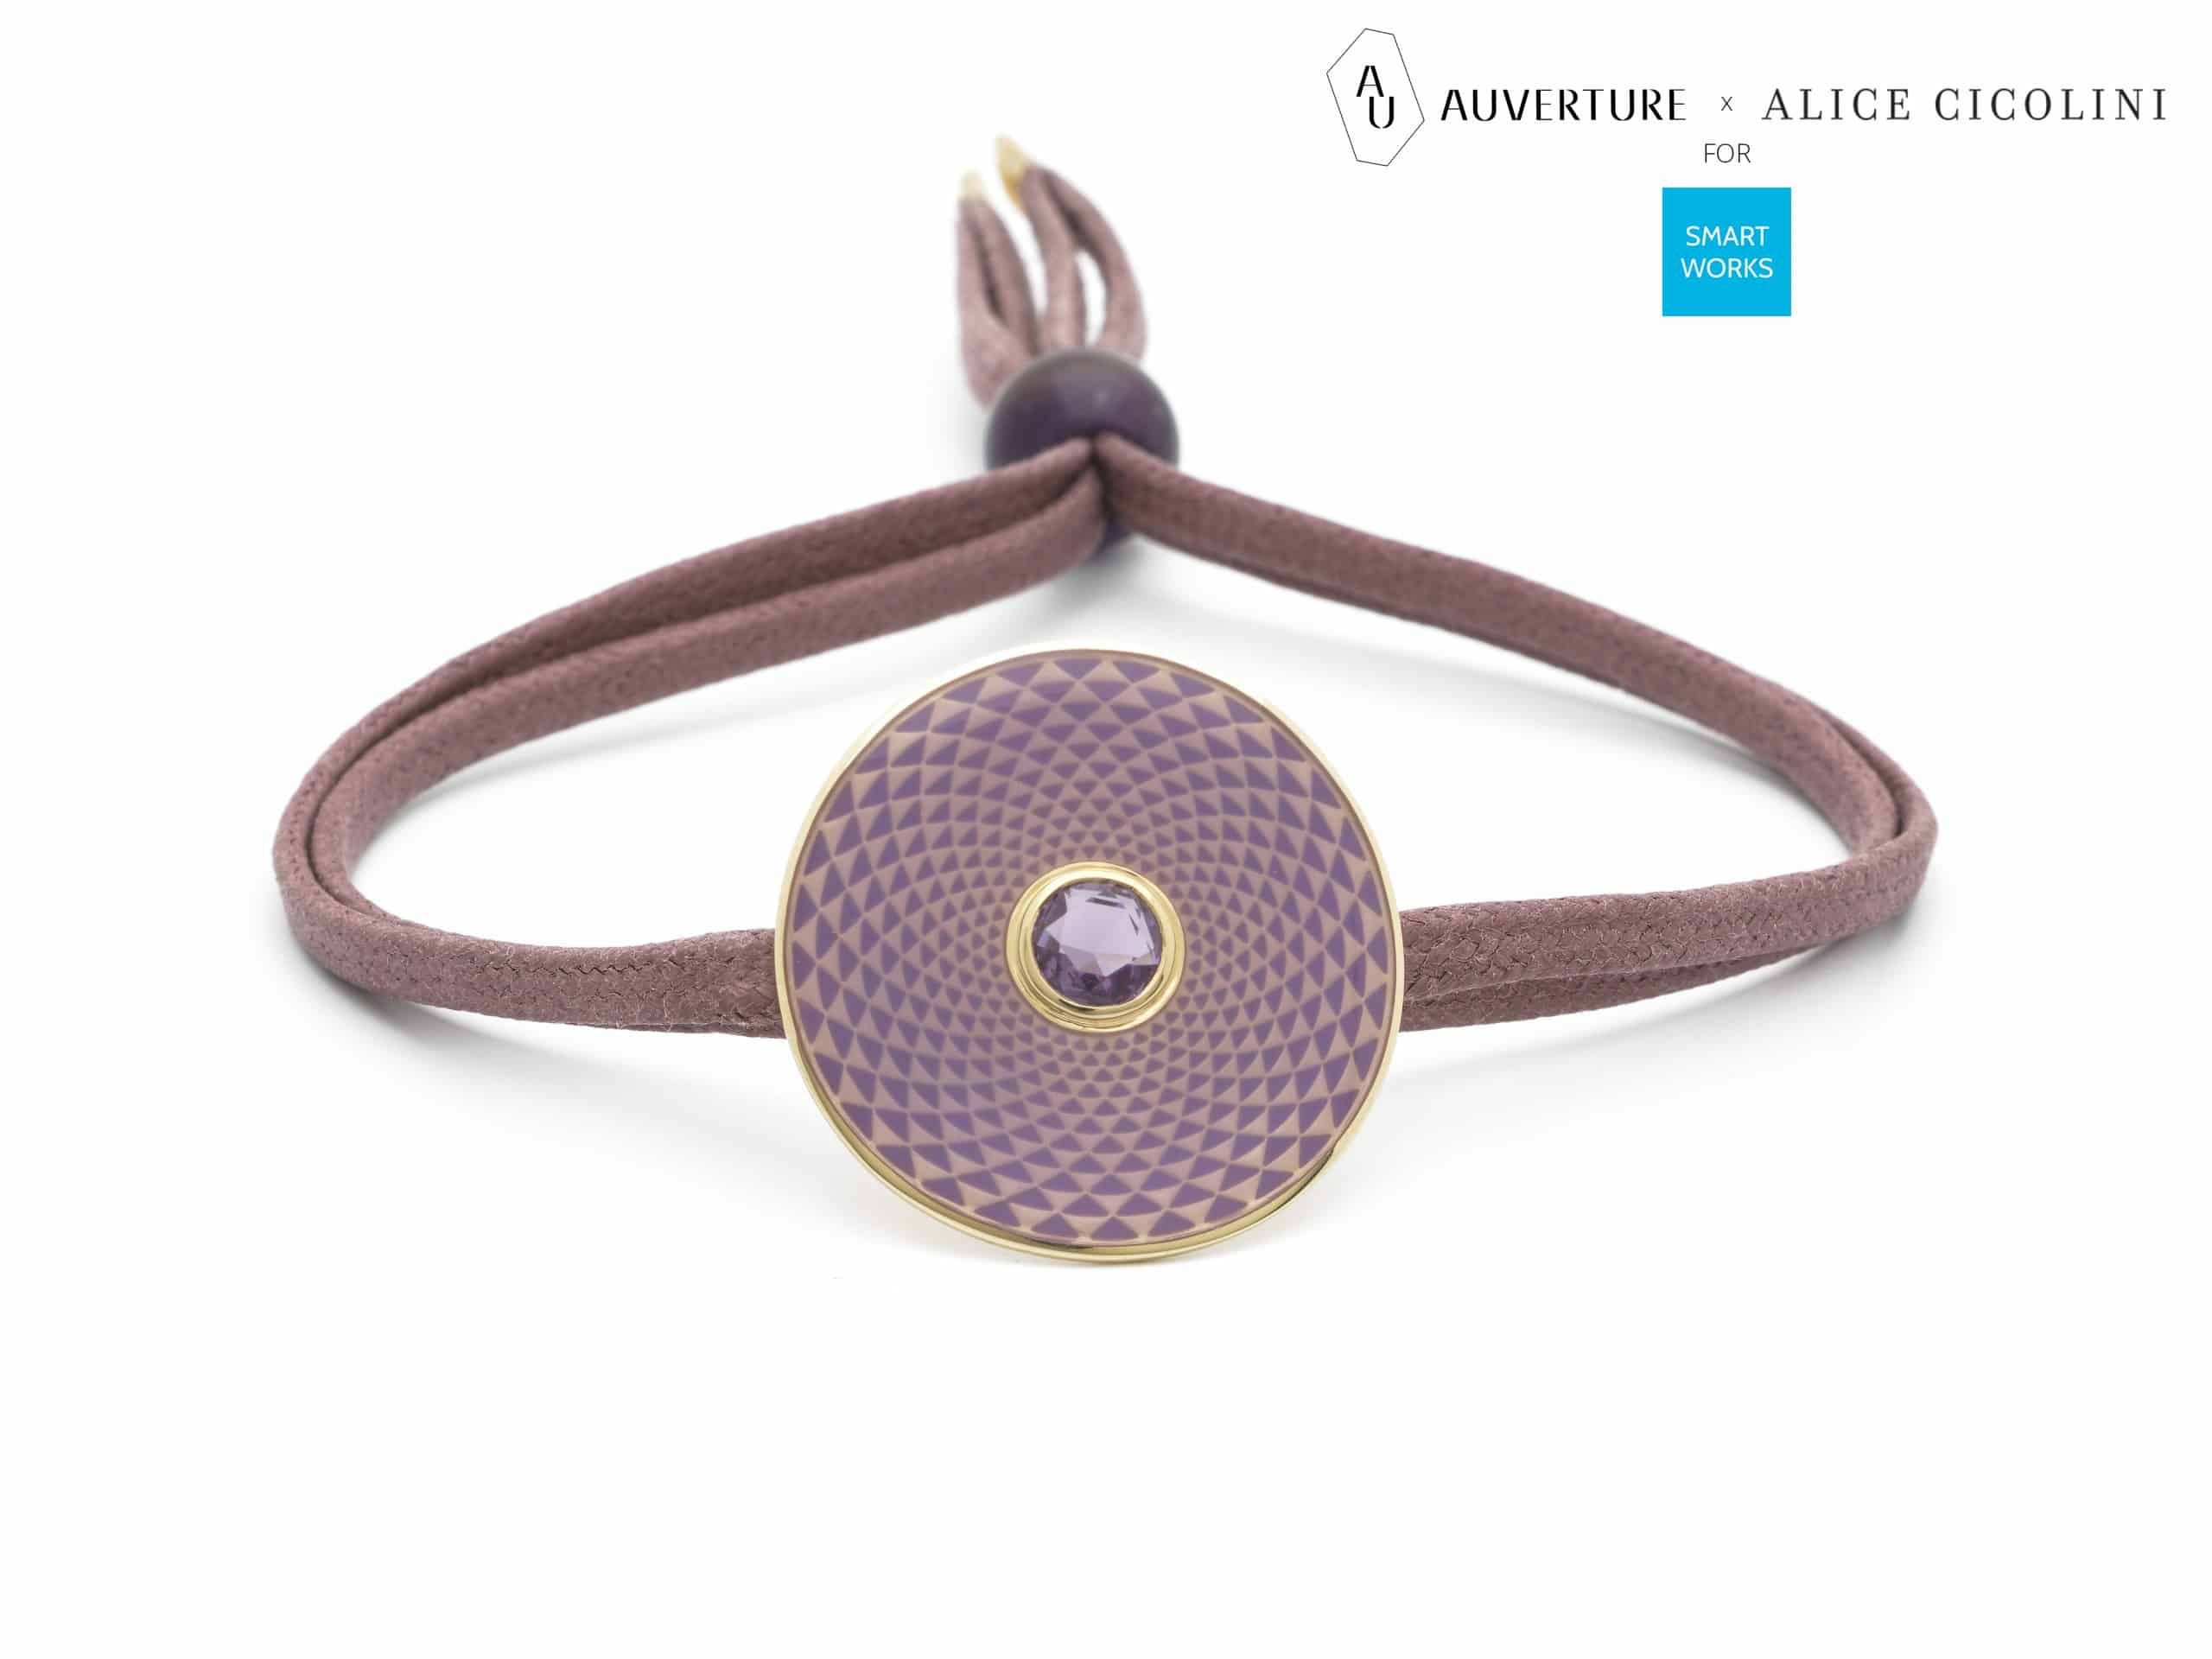 bracelet from Auverture United series